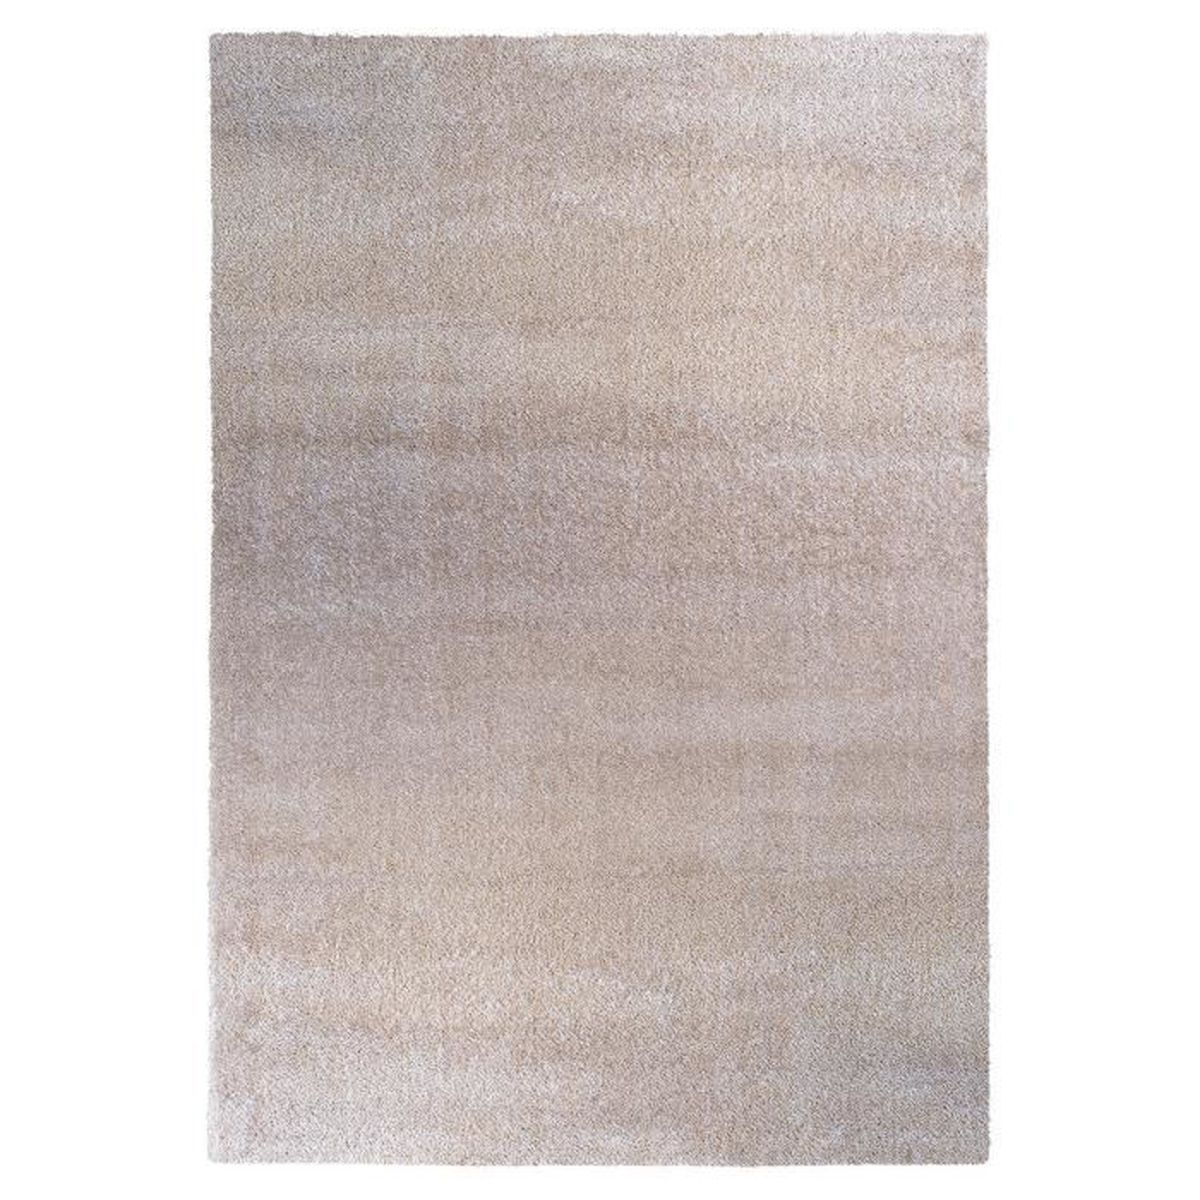 nettoyer tapis shaggy perfect faience cuisine et tapis shaggy taupe x beau tapis taupe pas cher. Black Bedroom Furniture Sets. Home Design Ideas